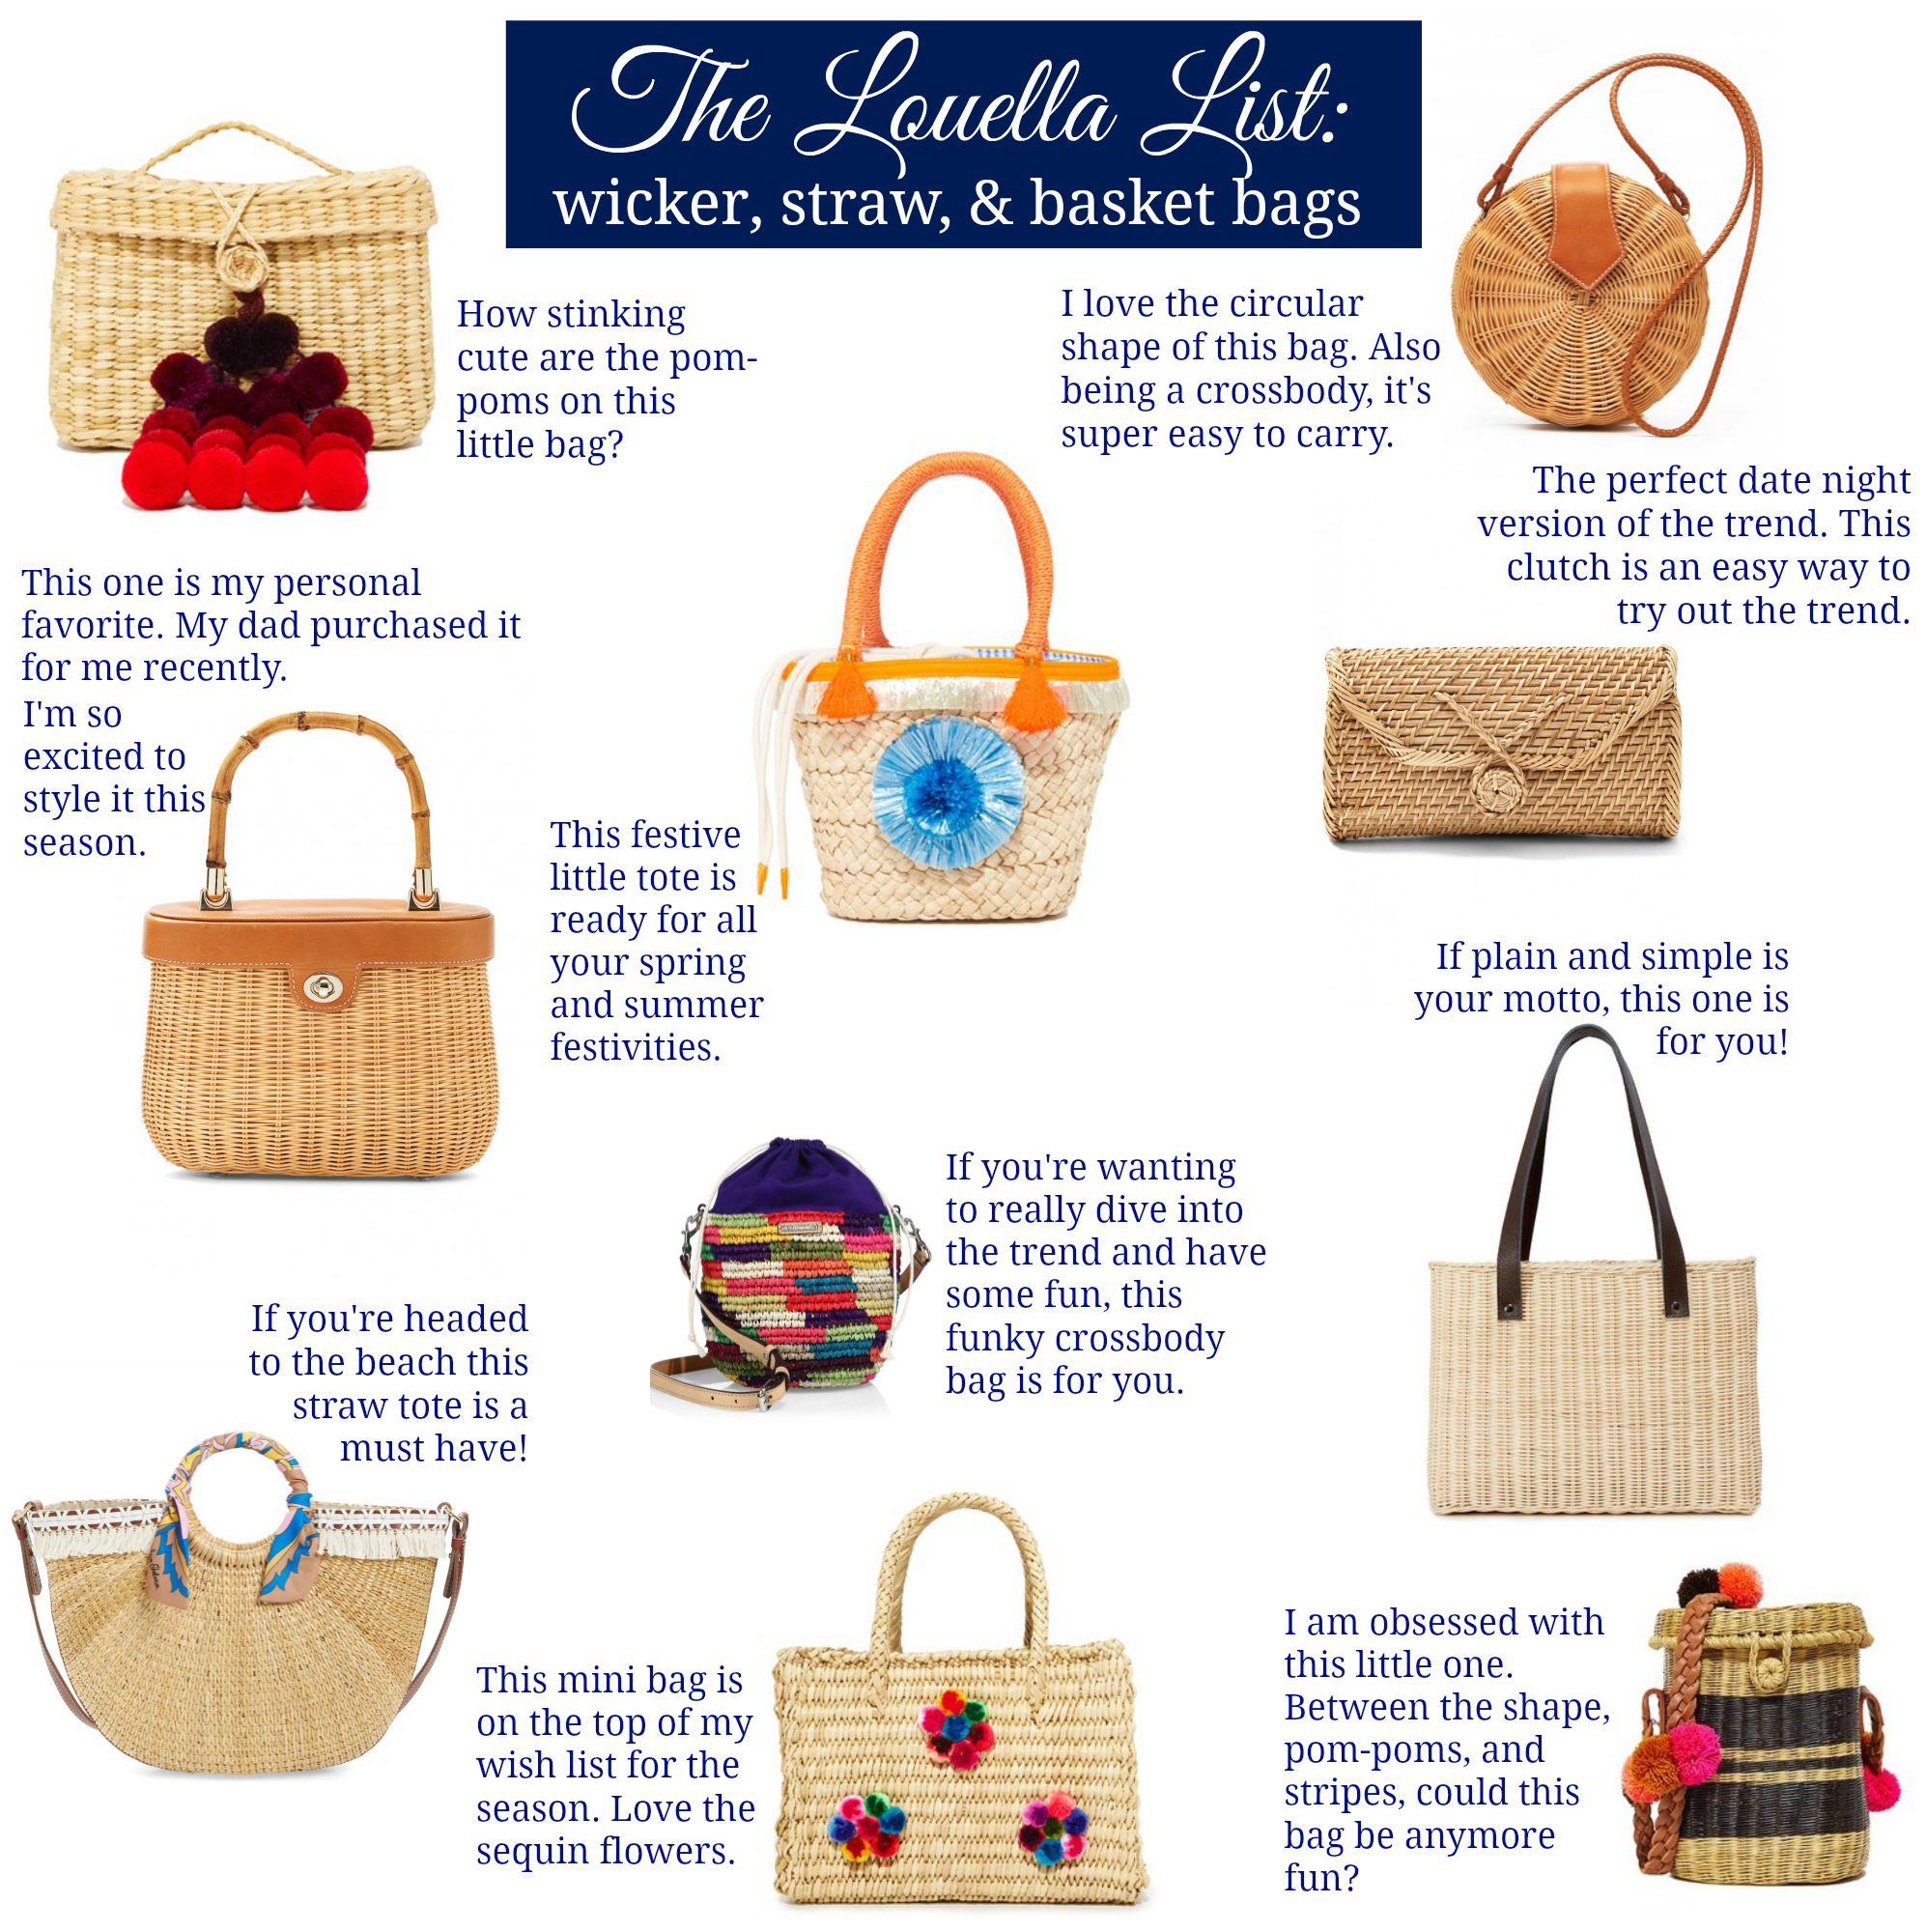 Straw Bags, Basket Bags, Wicker Bags, Spring Must Have Bags, The Louella List: Wicker Straw & Basket Bags